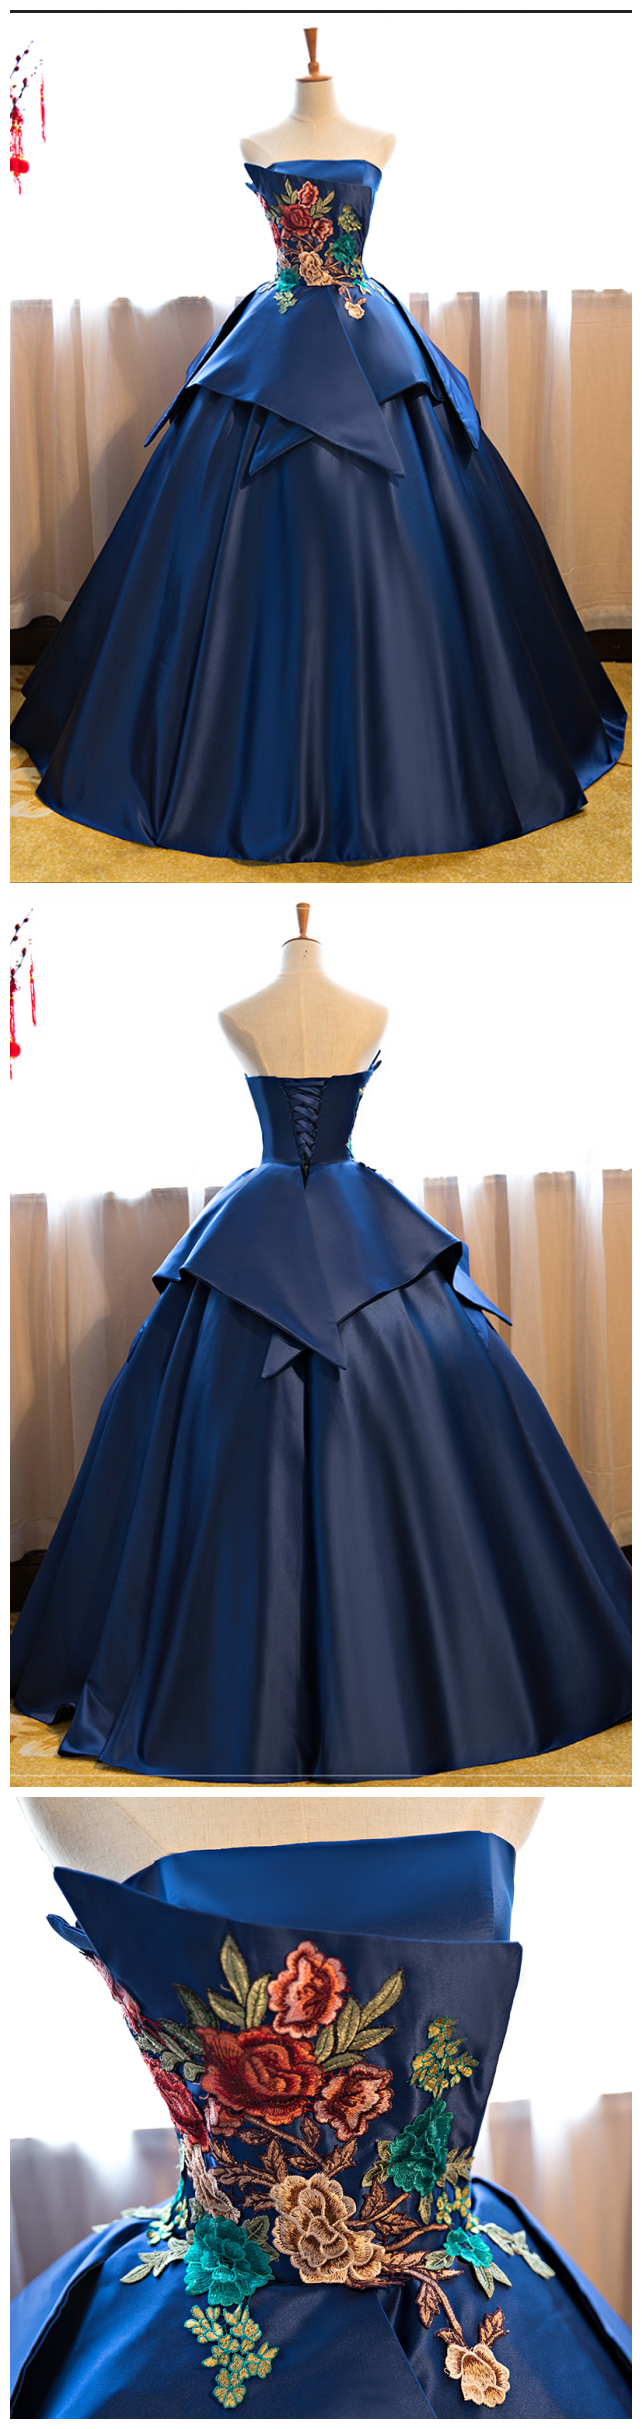 Royal blue floor length prom dress satin wedding gown featuring